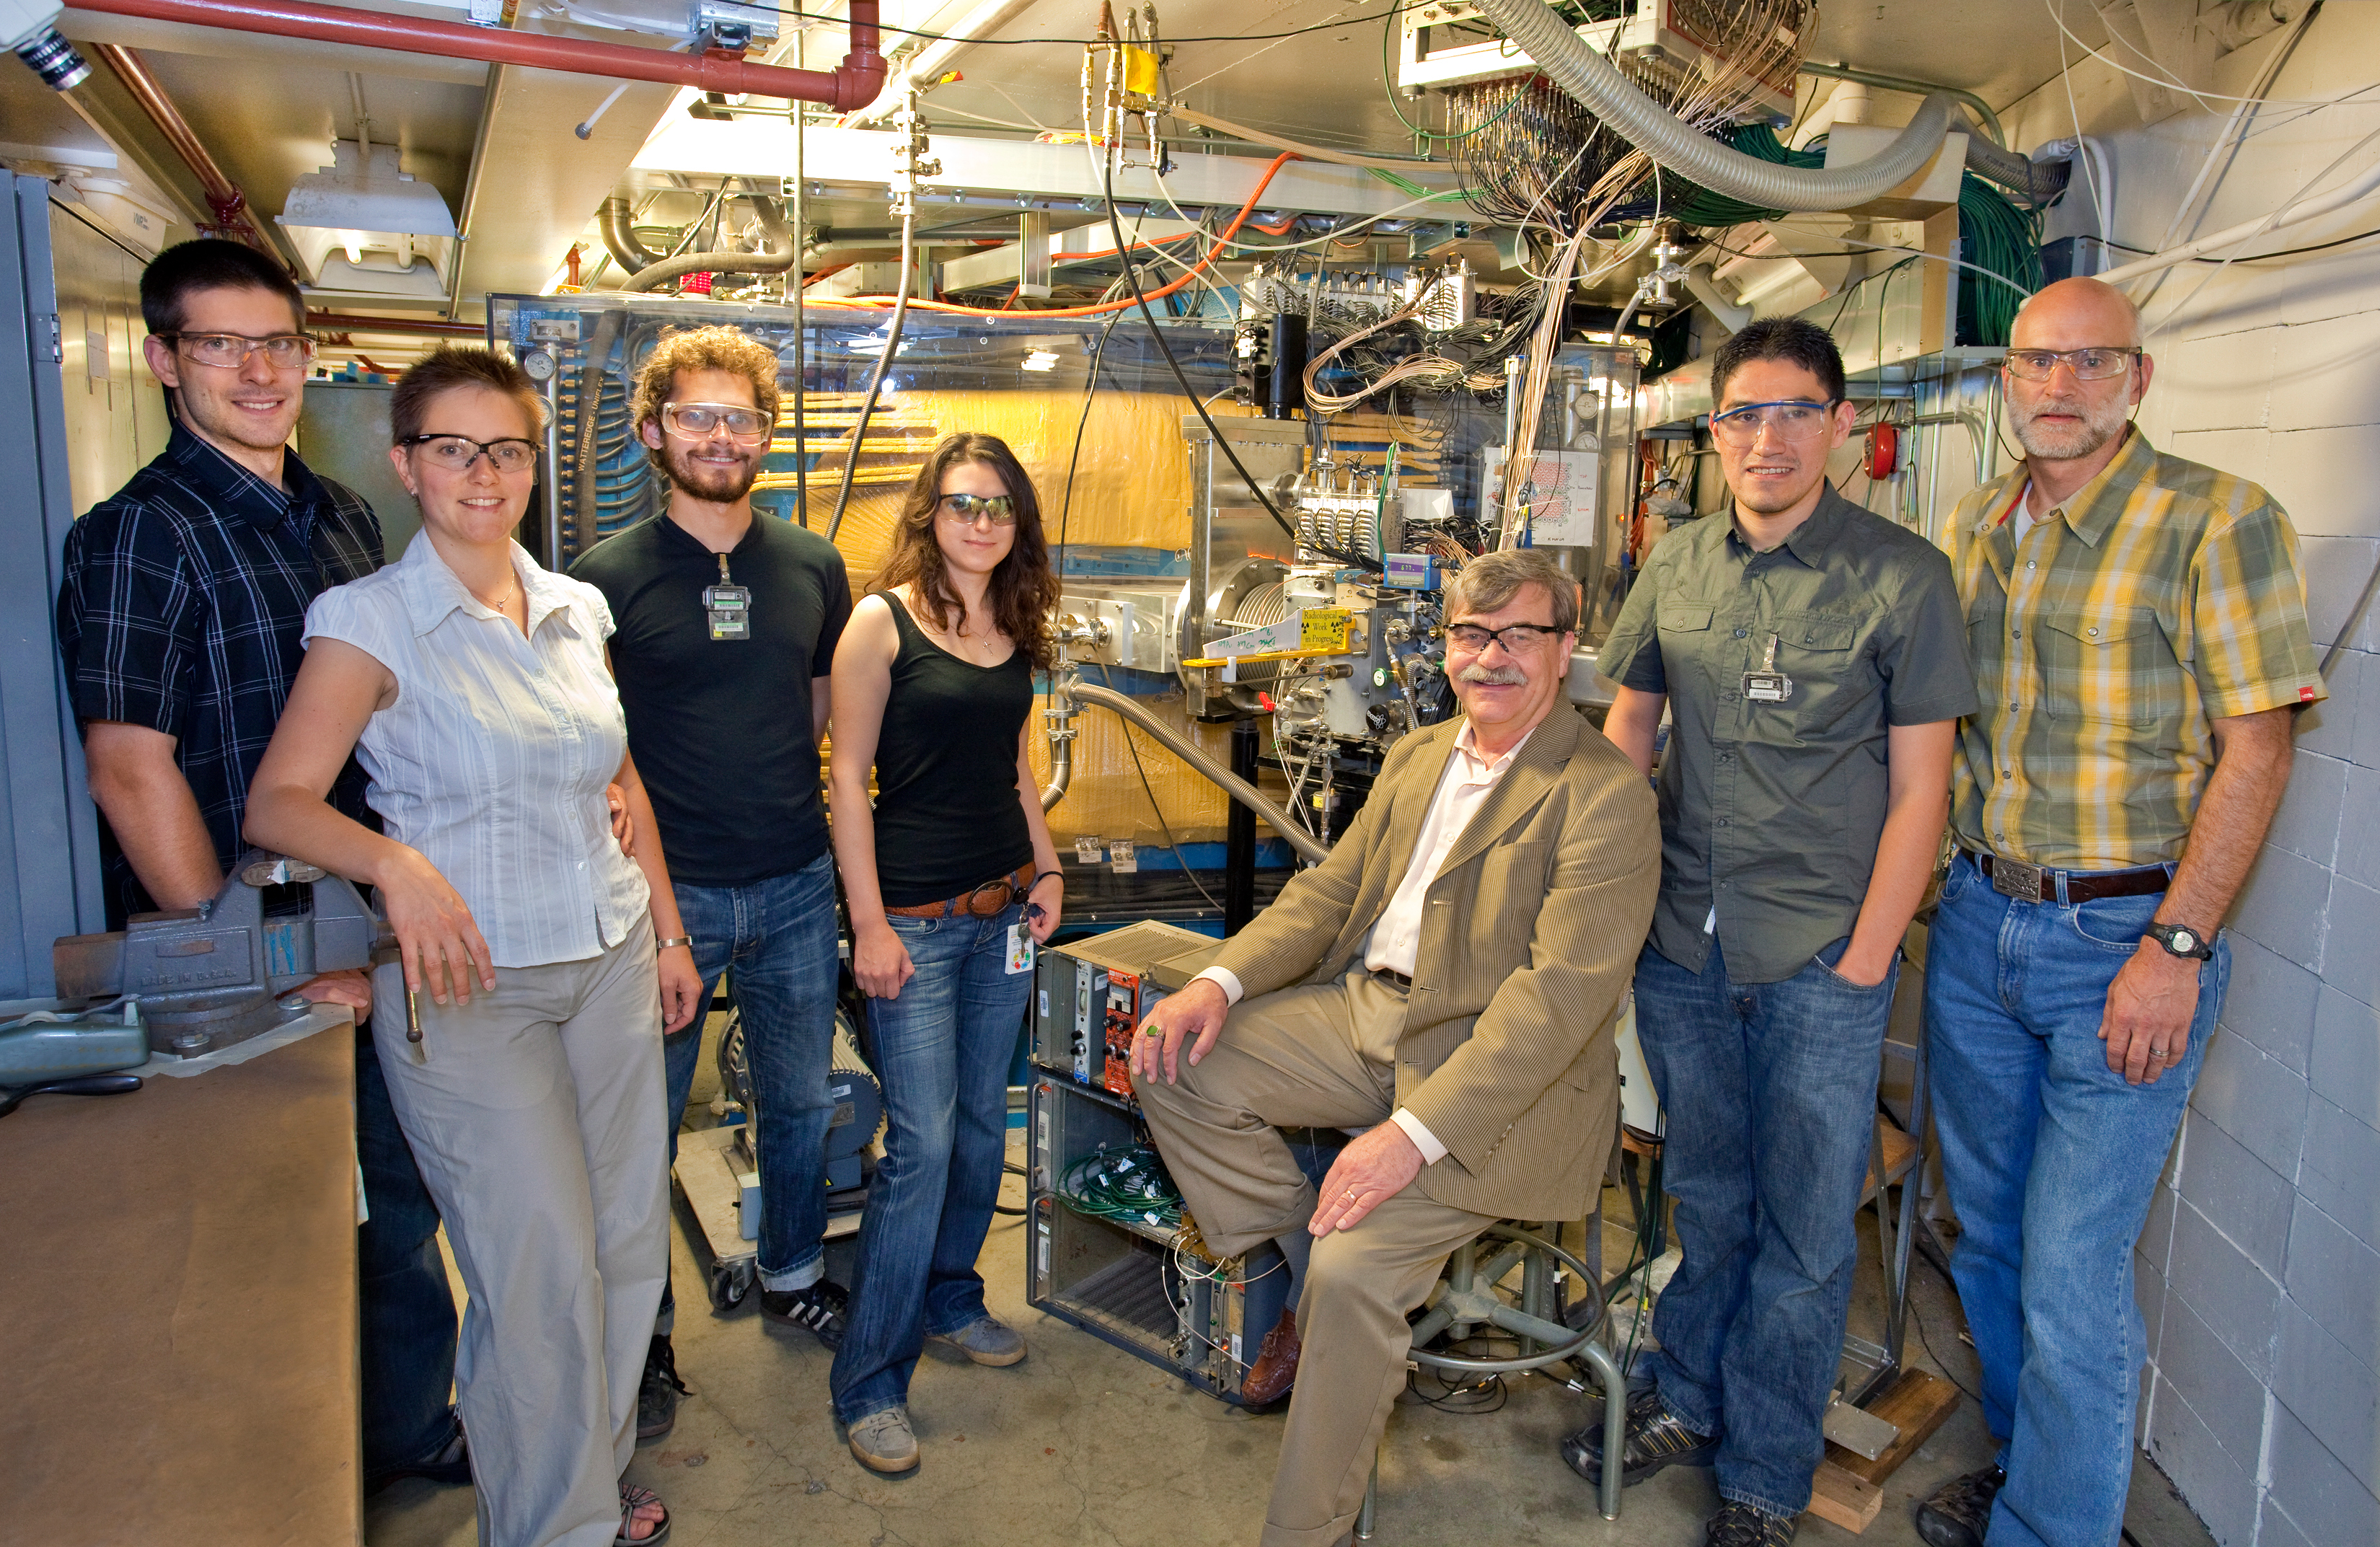 Members of the group that confirmed the production of element 114 in front of the Berkeley Gas-filled Separator at the 88-Inch Cyclotron, from left: Jan Dvorak, Zuzana Dvorakova, Paul Ellison, Irena Dragojevic, Heino Nitsche, Mitch Andre Garcia, and Ken Gregorich. Not pictured in Liv Stavestra. (Photo by Roy Kaltschmidt, Berkeley Lab Creative Services Office. For best resolution, click on image.)